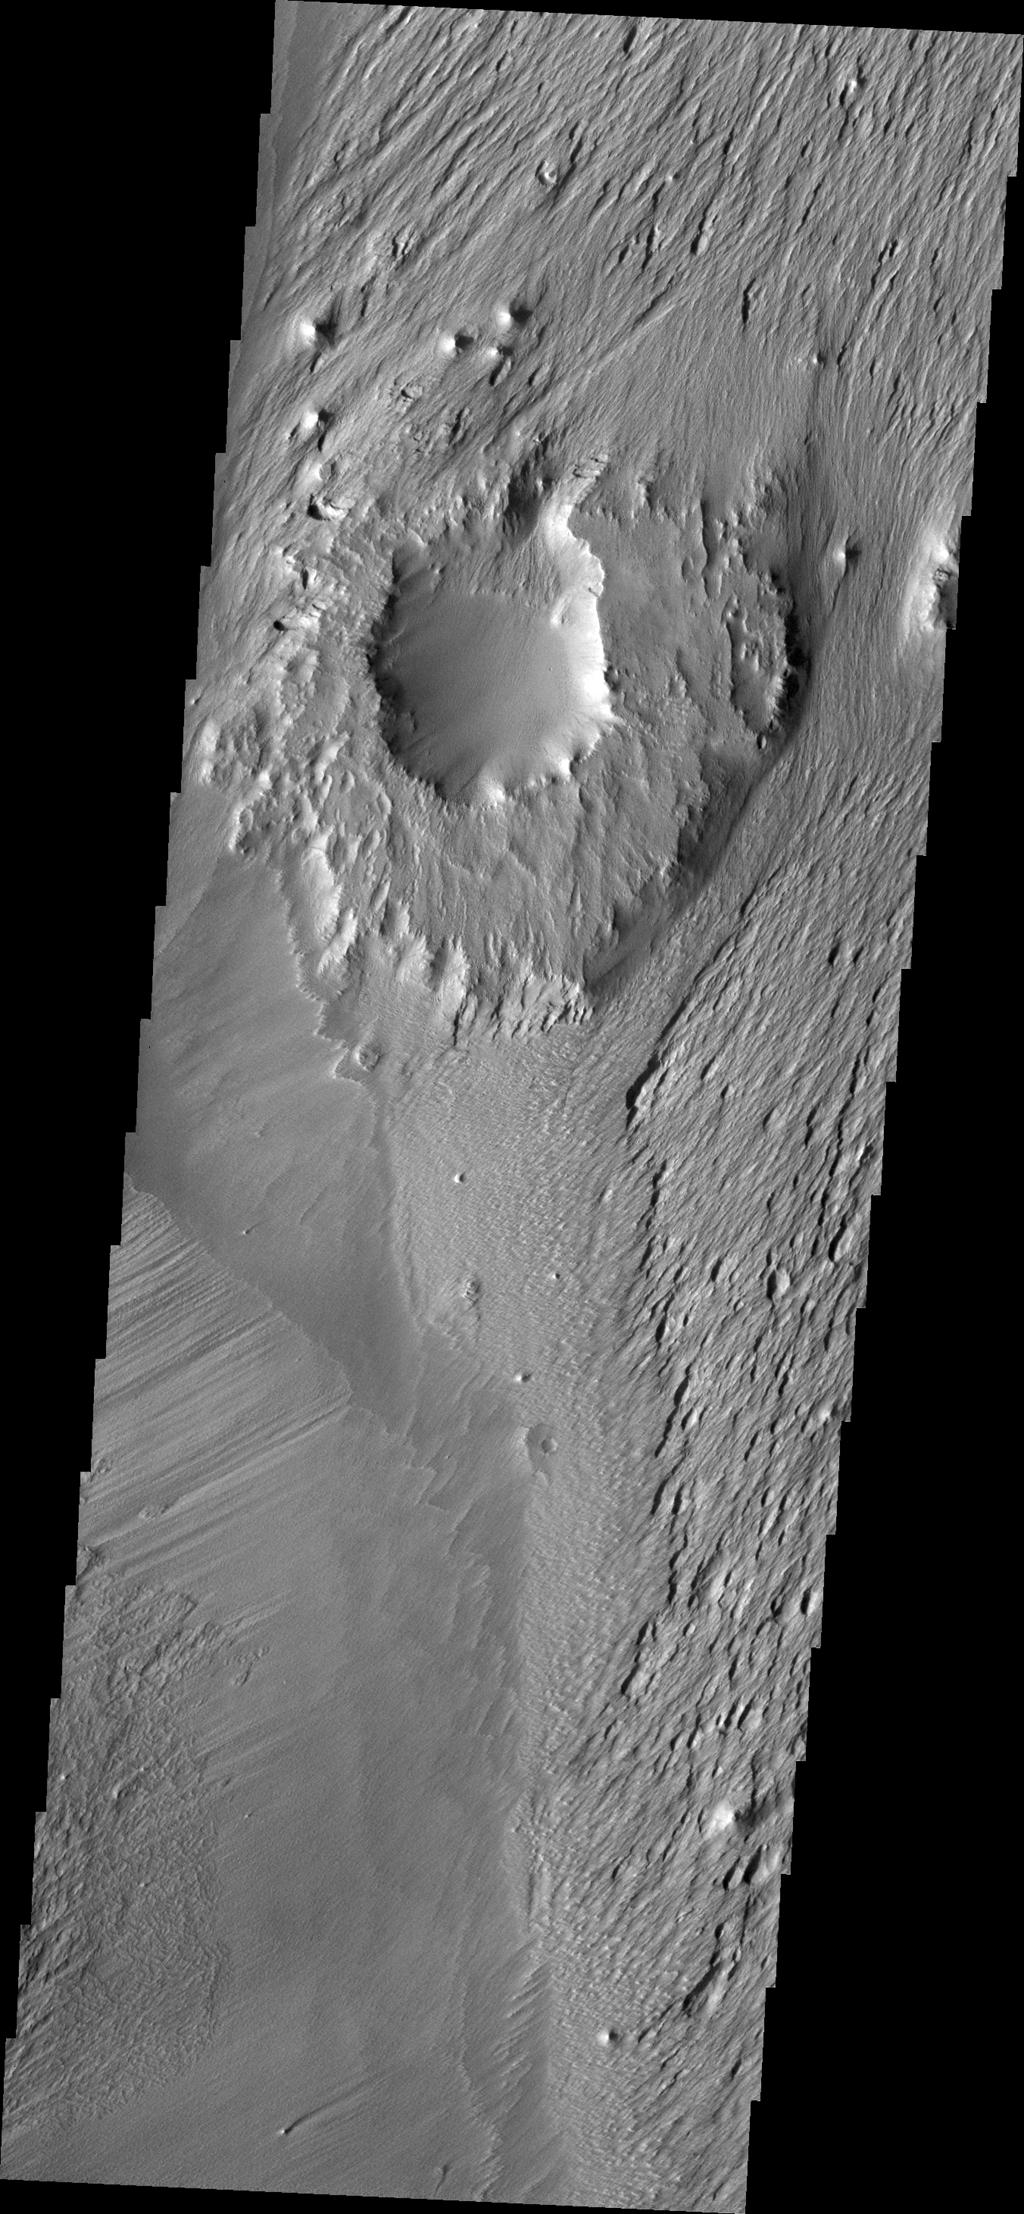 The ejecta materials of this crater are more resistant to erosion than the surrounding materials. The wind has eroded pits and other features around the crater causing it to become a topographic high. This image is from NASA's Mars Odyssey.